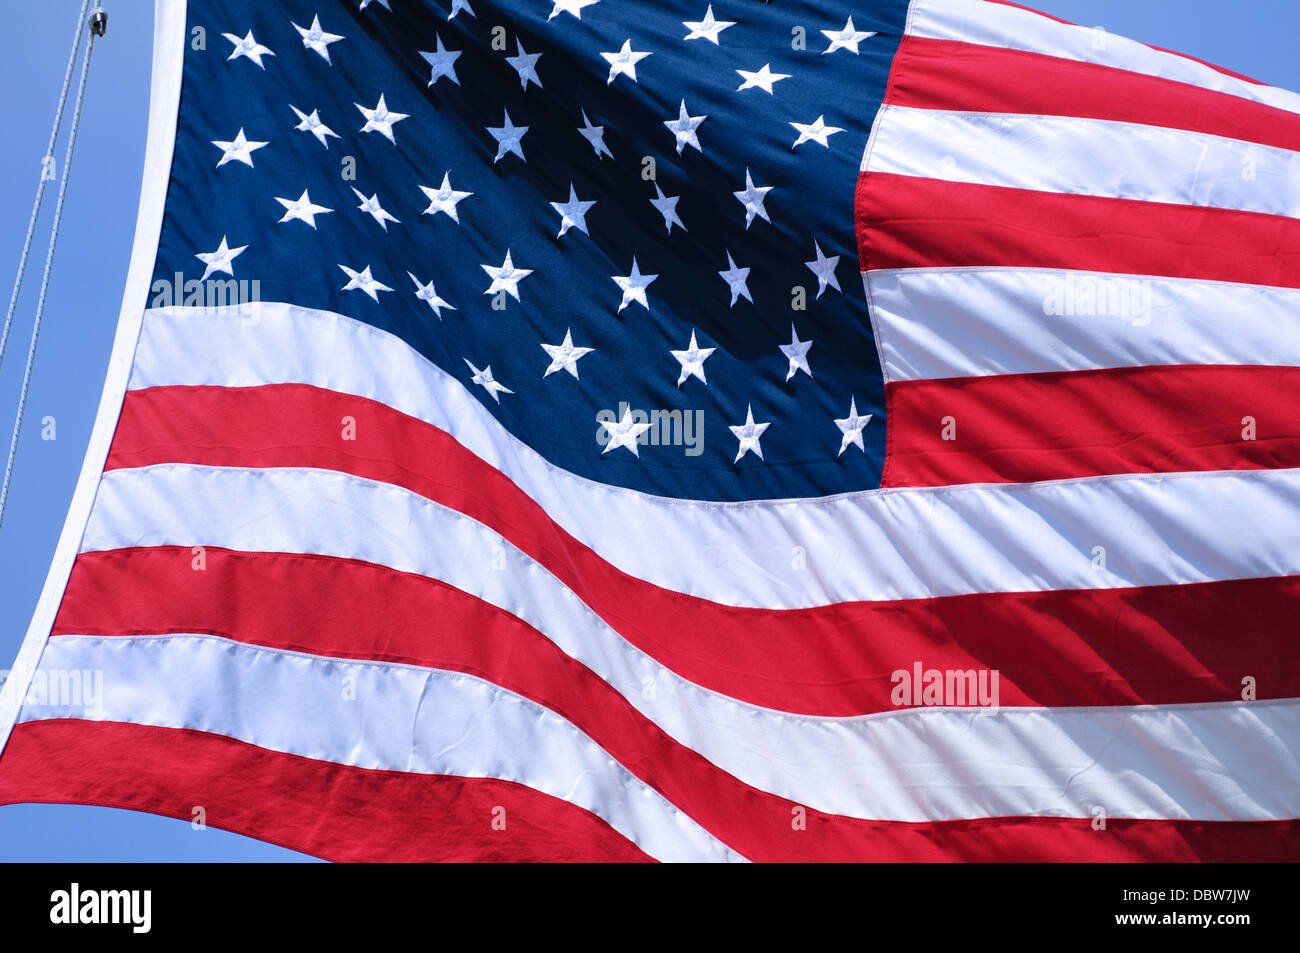 American Flag of the United States - Stock Image